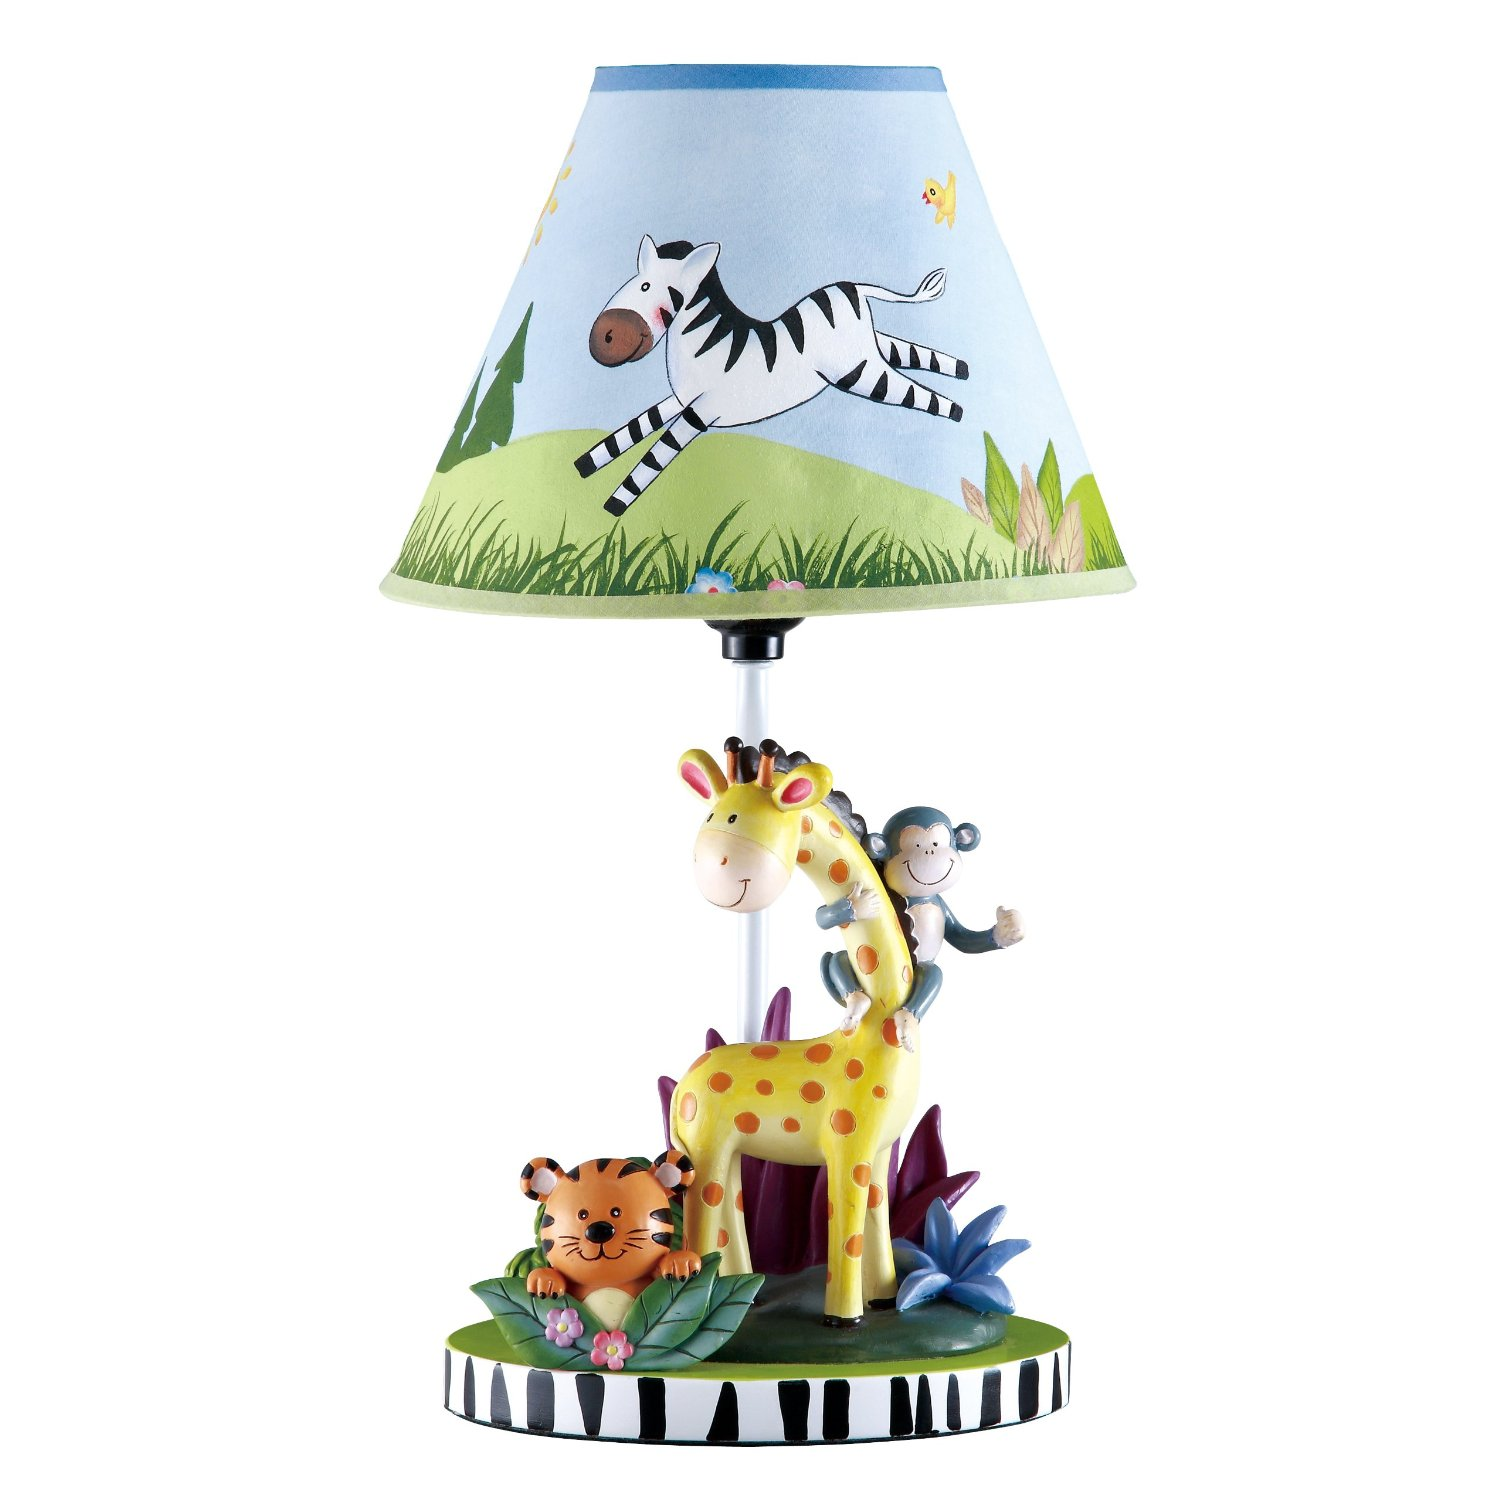 Kids Rooms Lamps Cute Lamps For Kids Rooms Lighting Interior Decorating Idea